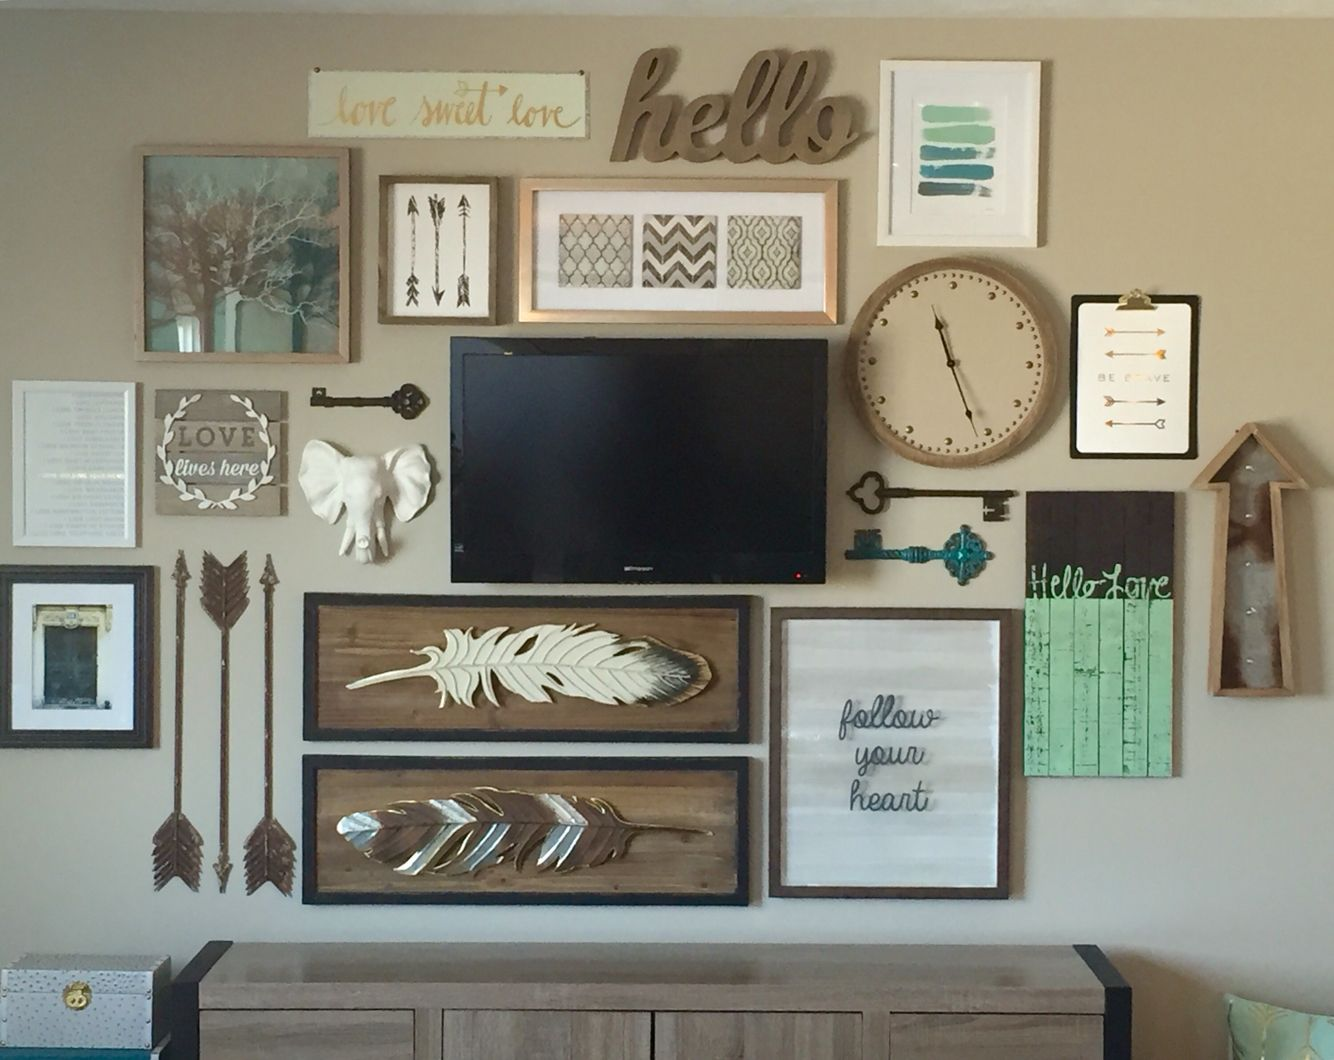 Decorating Ideas Around Tv On Wall Love All The Things And Colonies Too Much On One Wall